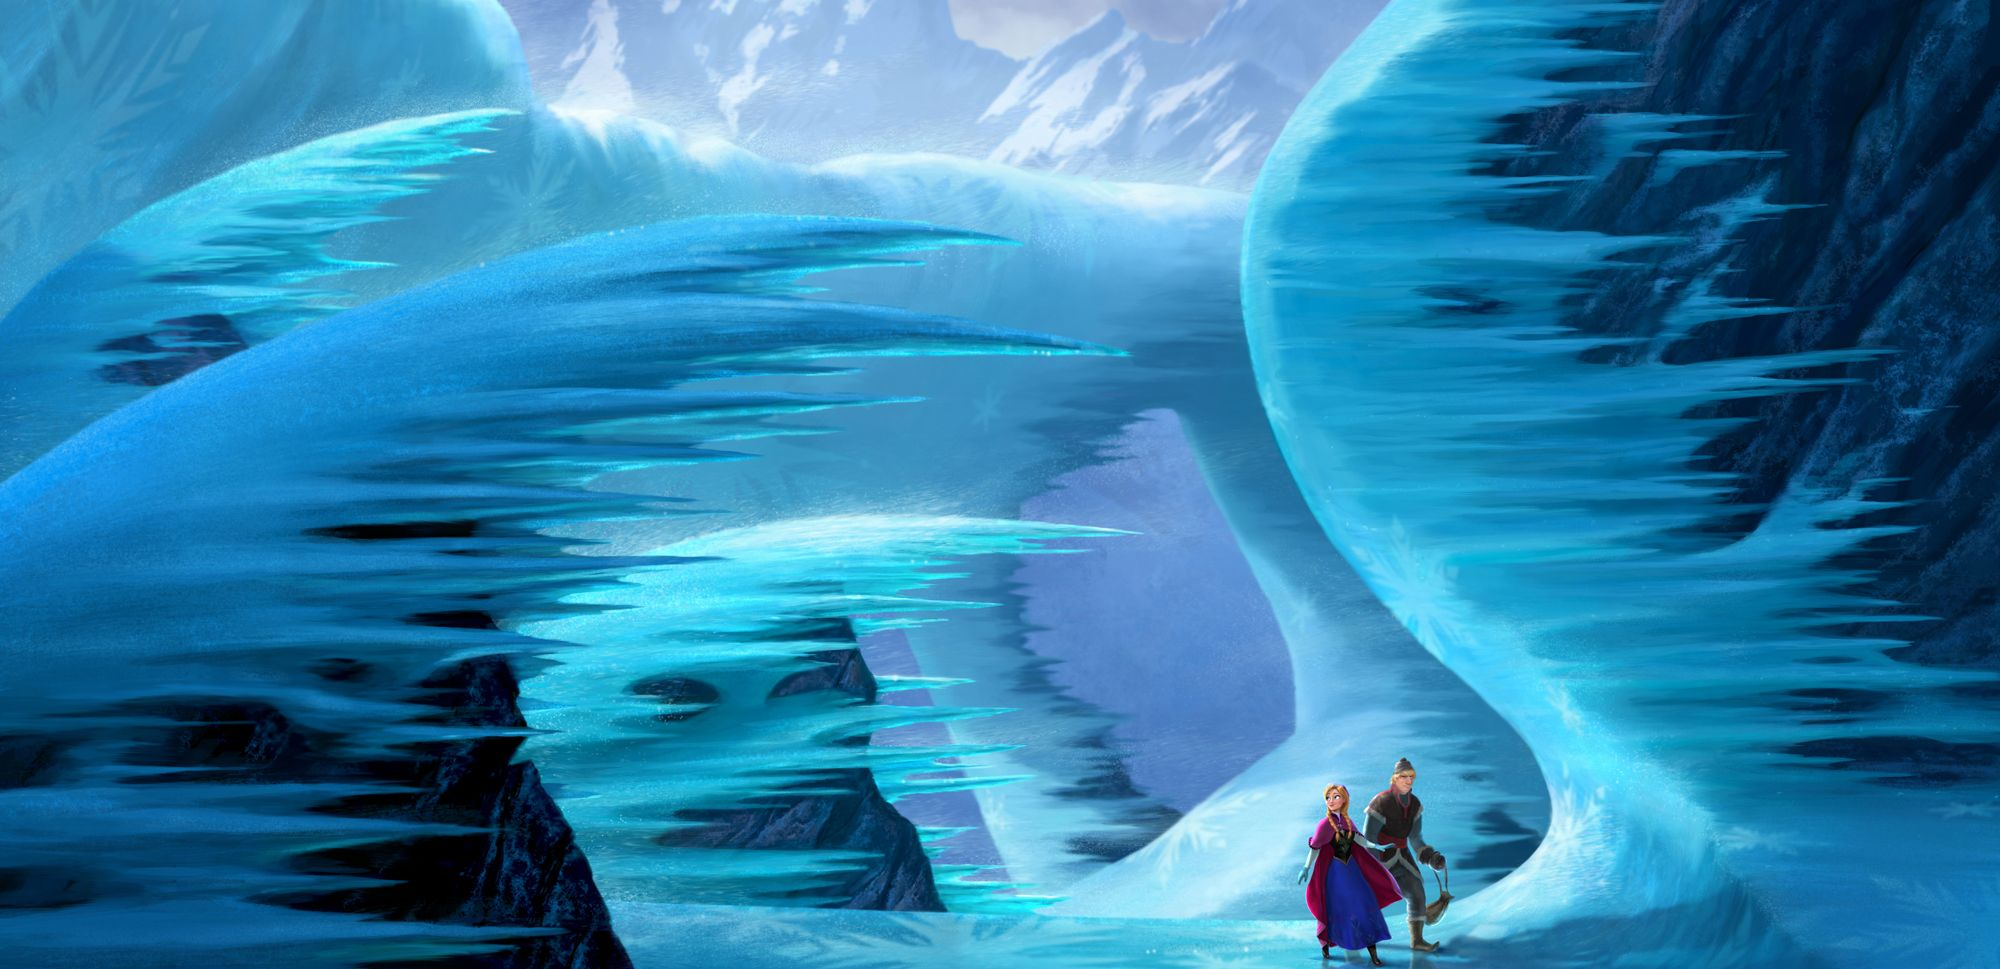 First Look at Disney's Frozen - IGN